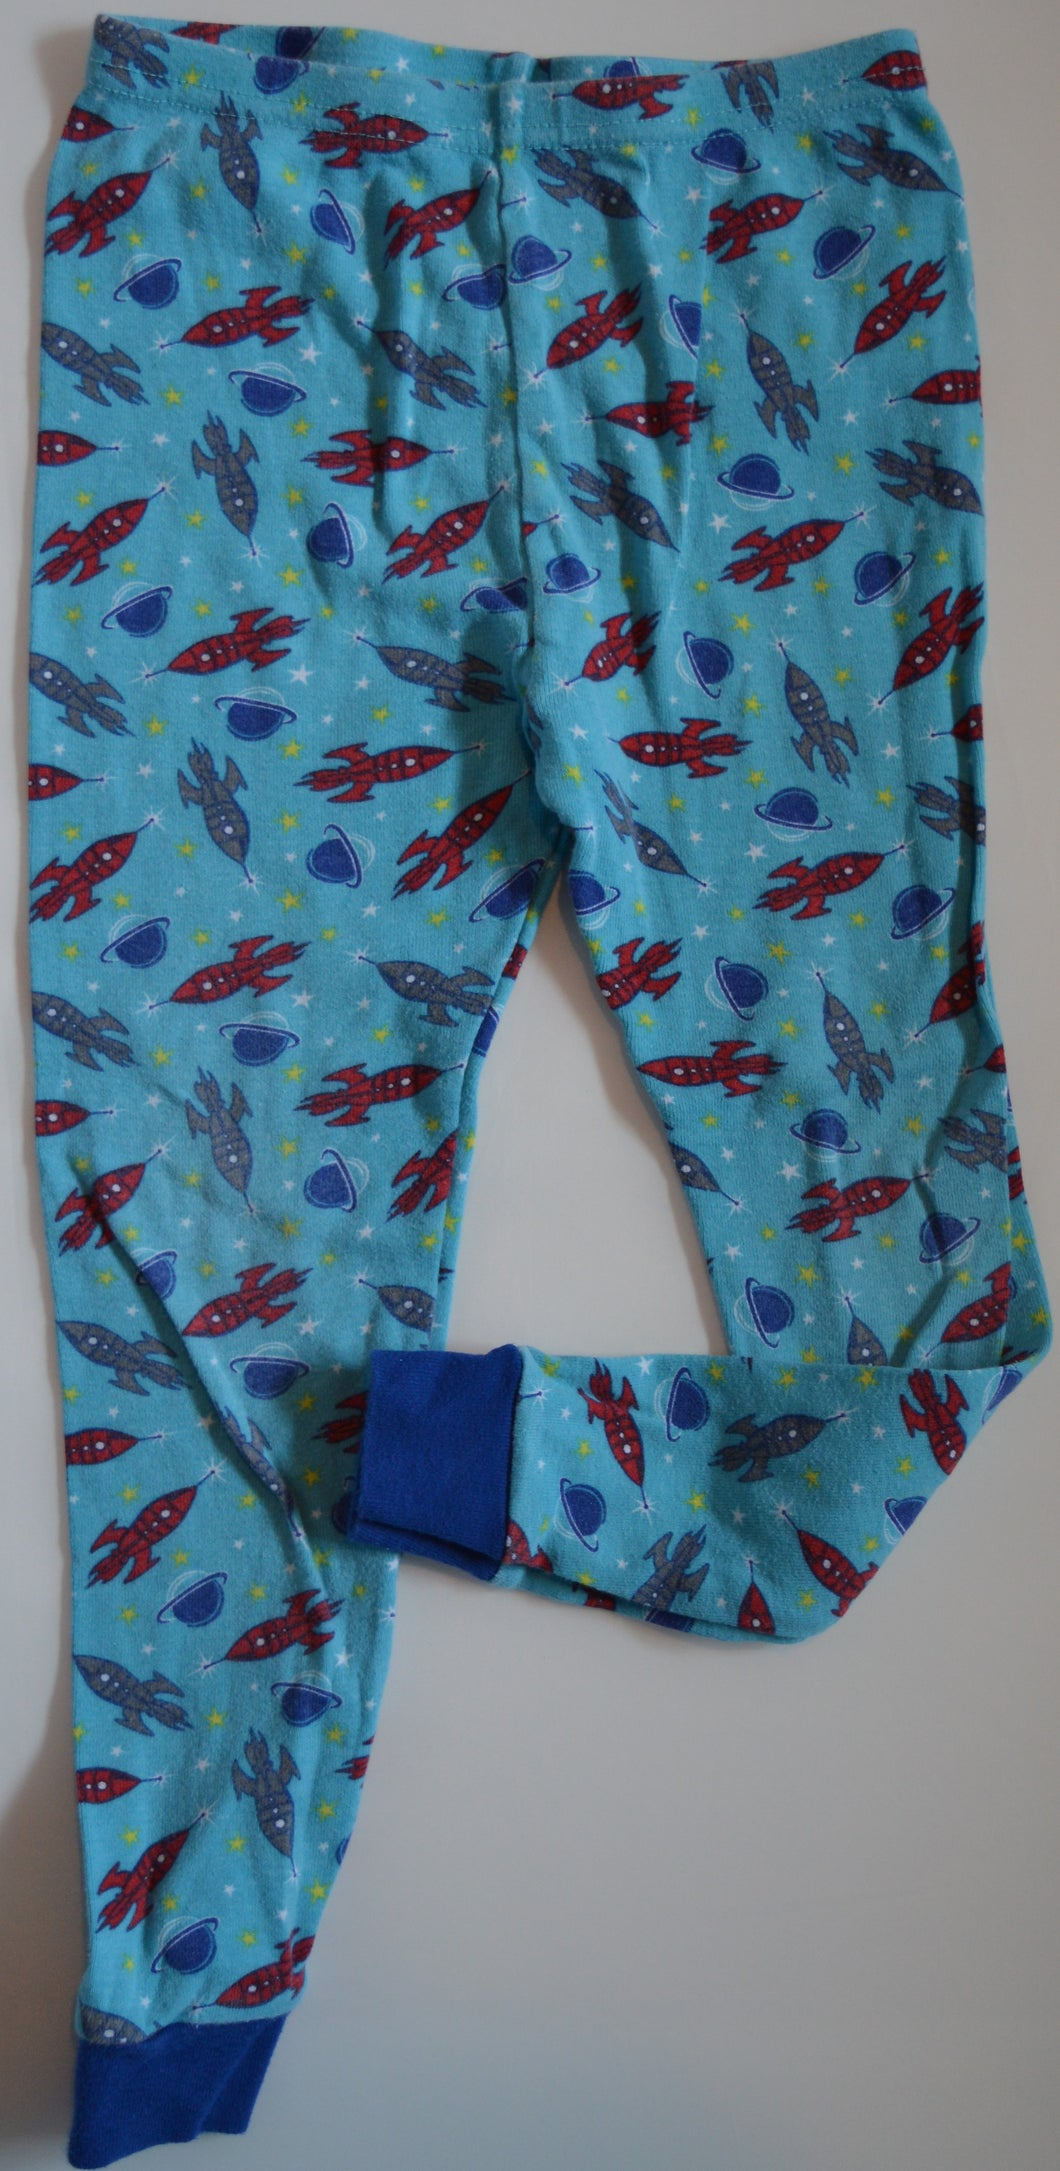 Blue with Red and Grey Rocket Ships Pajama Pants